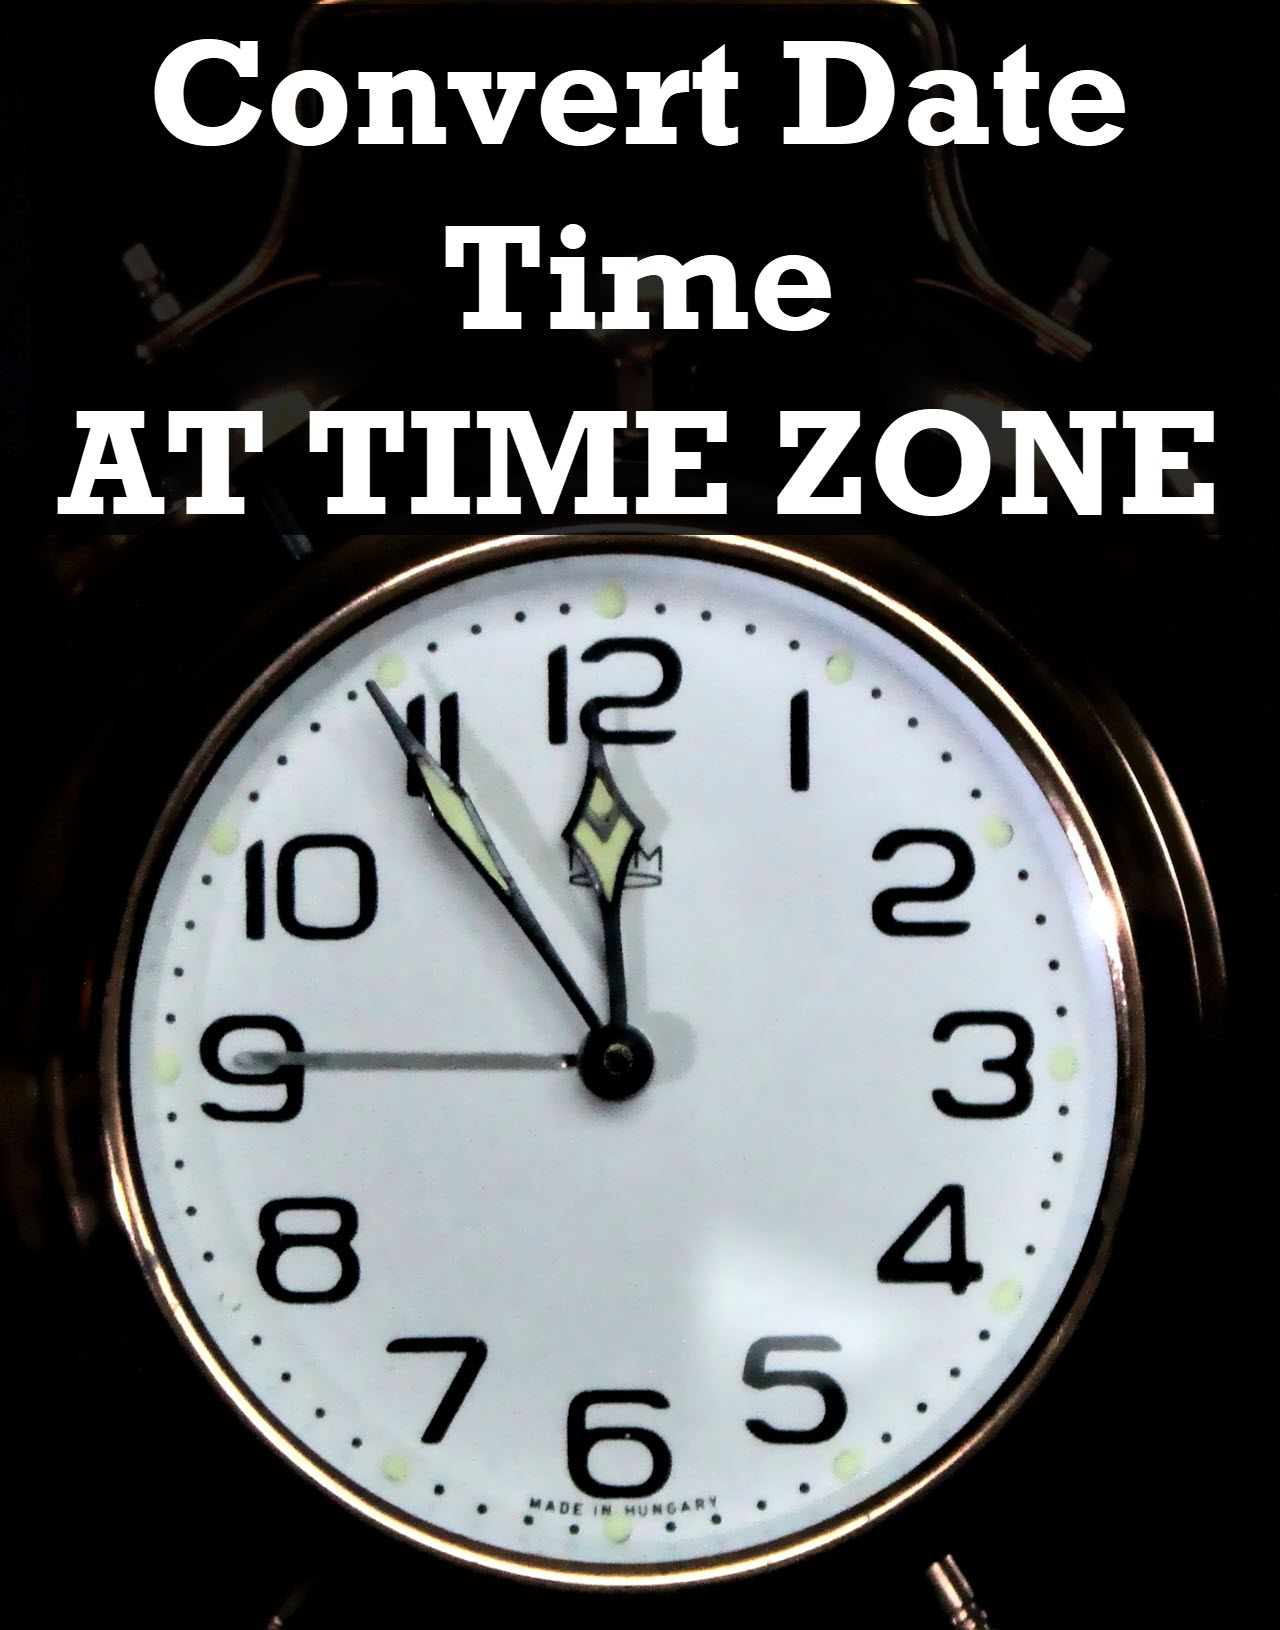 SQL SERVER – Convert Date Time AT TIME ZONE